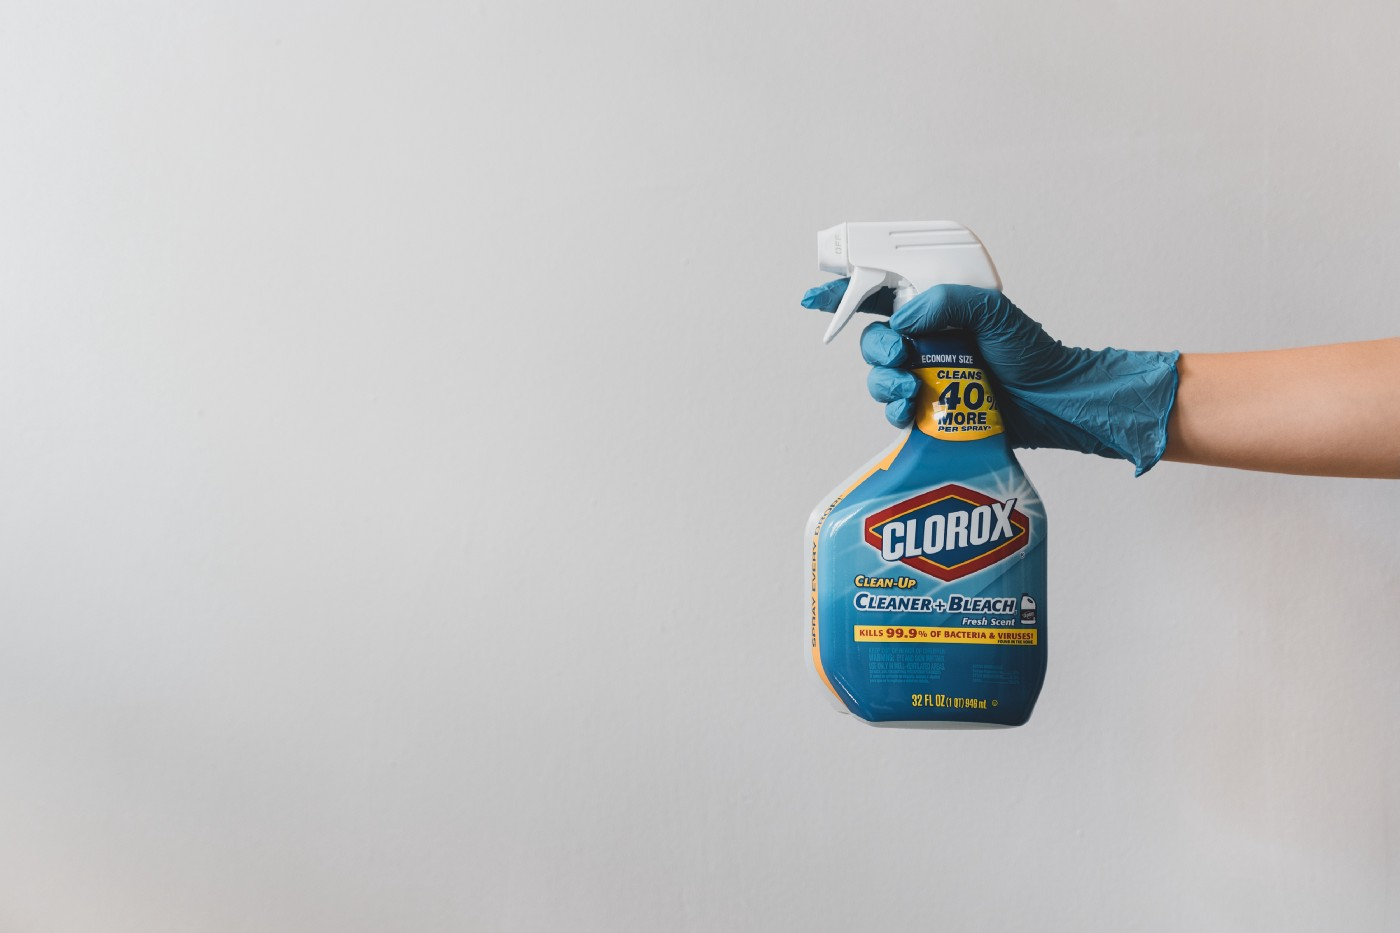 A gloved hand with a bottle of Clorox spray pointed at something